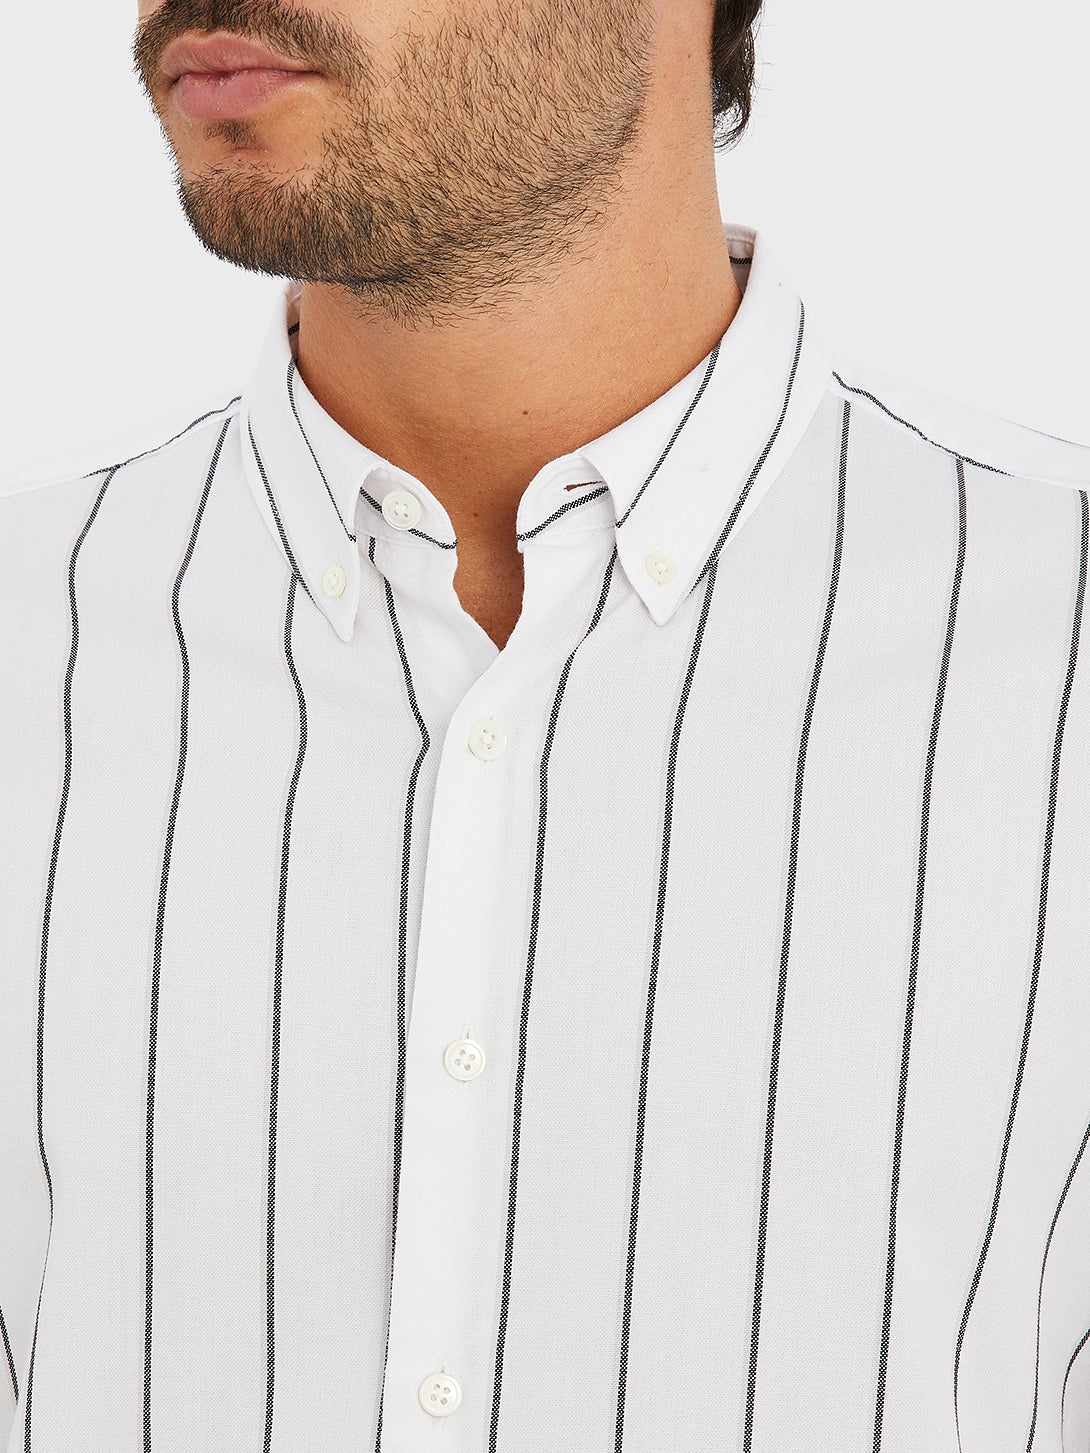 ONS Clothing Men's FULTON WIDE STRIPE OXFORD SHIRT in GREY STRIPE black friday deals